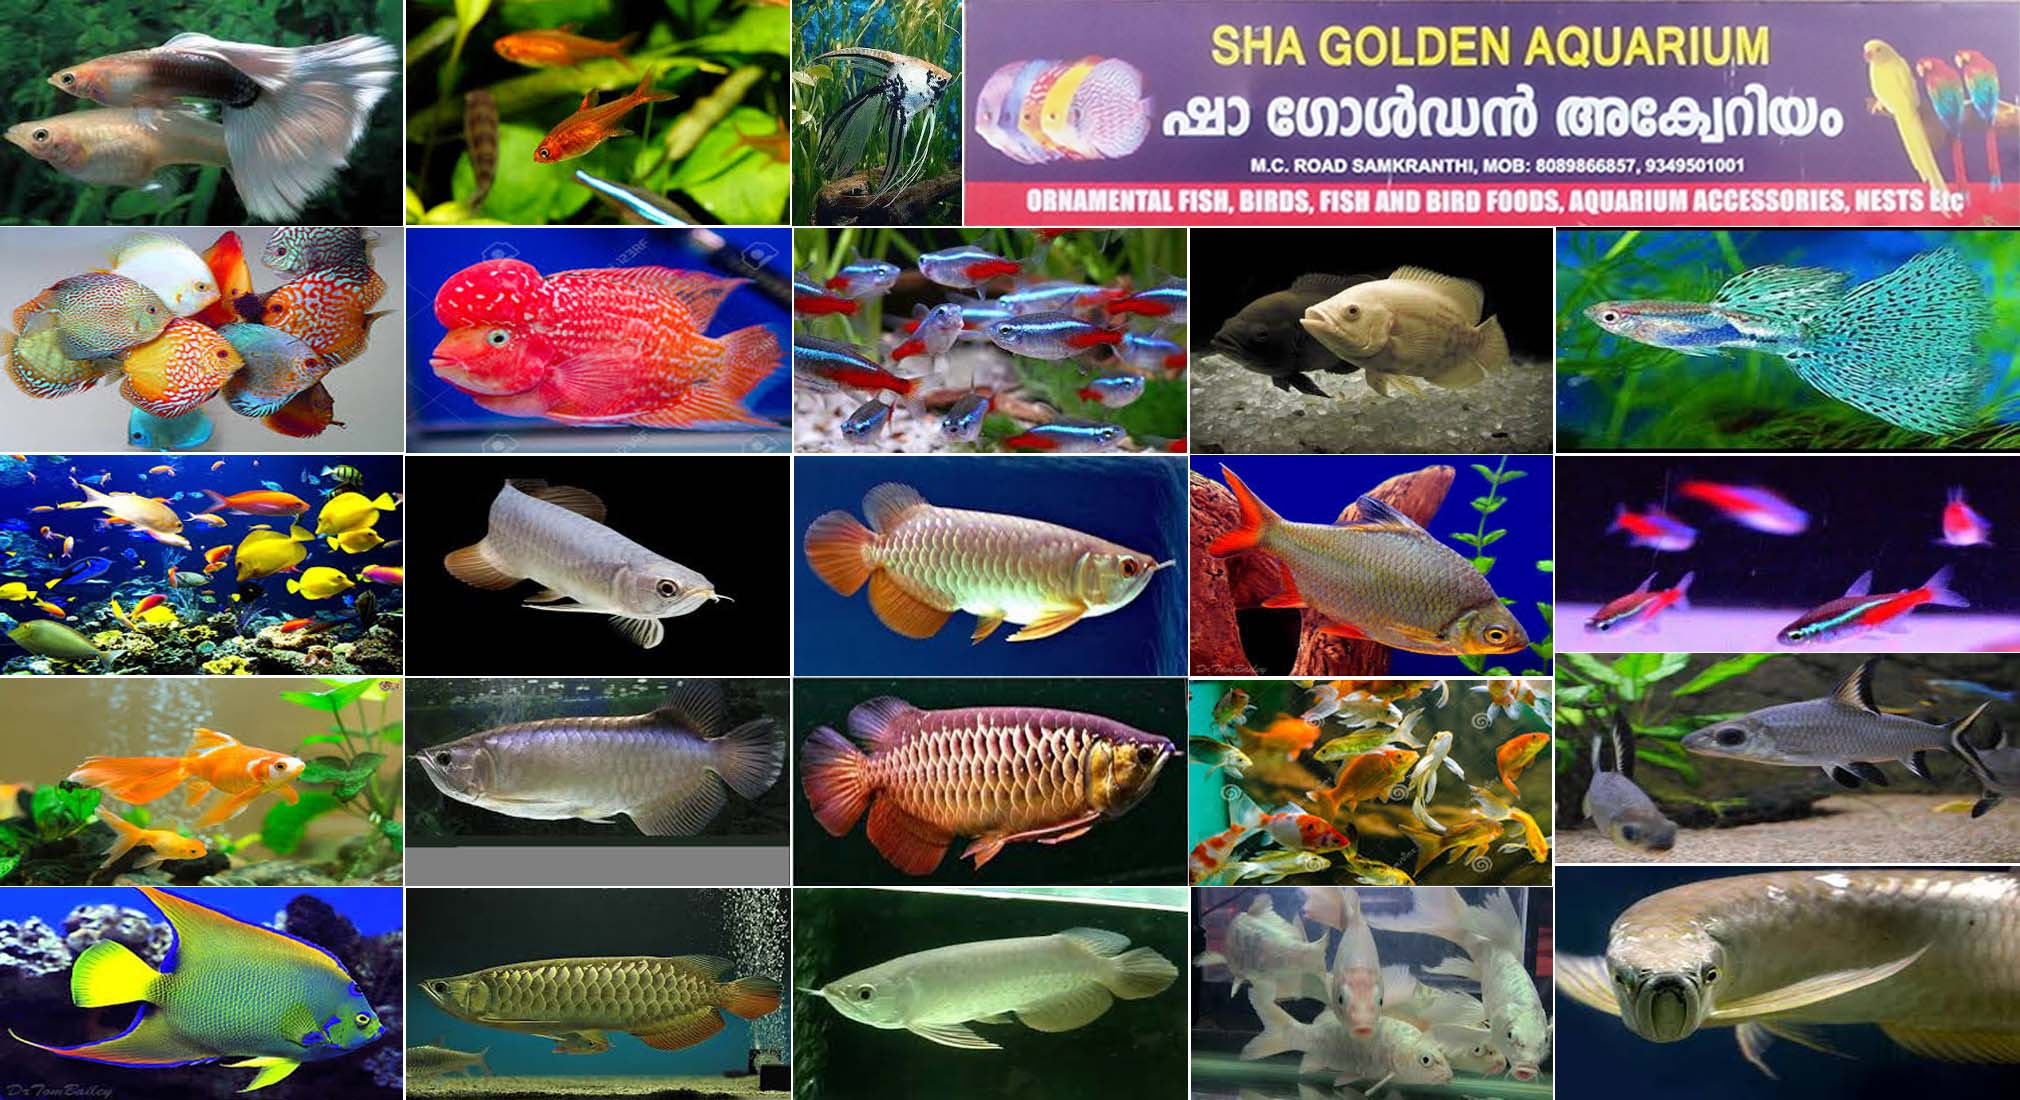 Fish Aquarium In Coimbatore - Located in